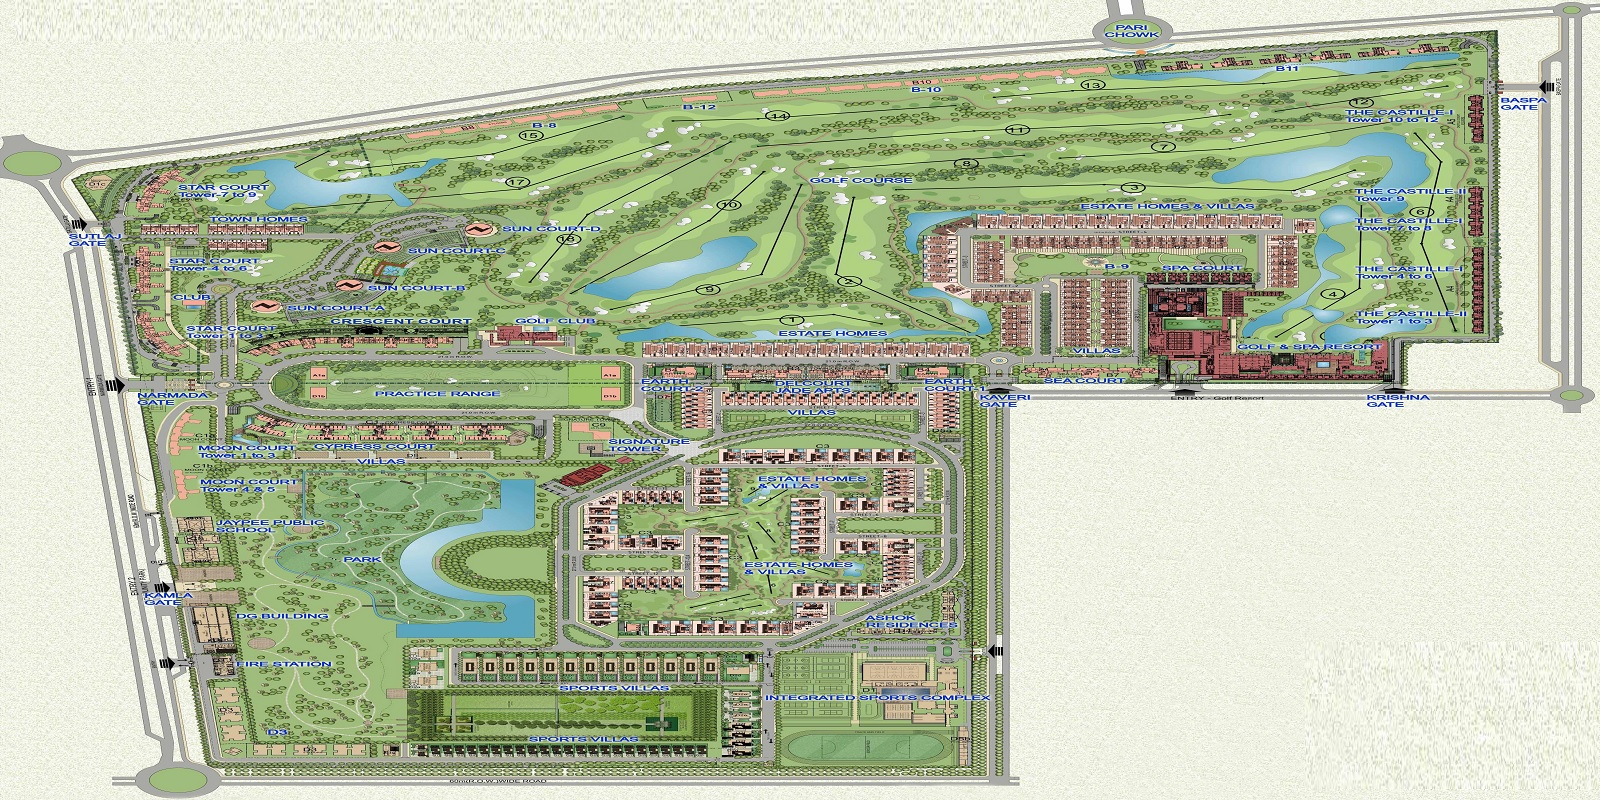 jaypee green earth court project master plan image1